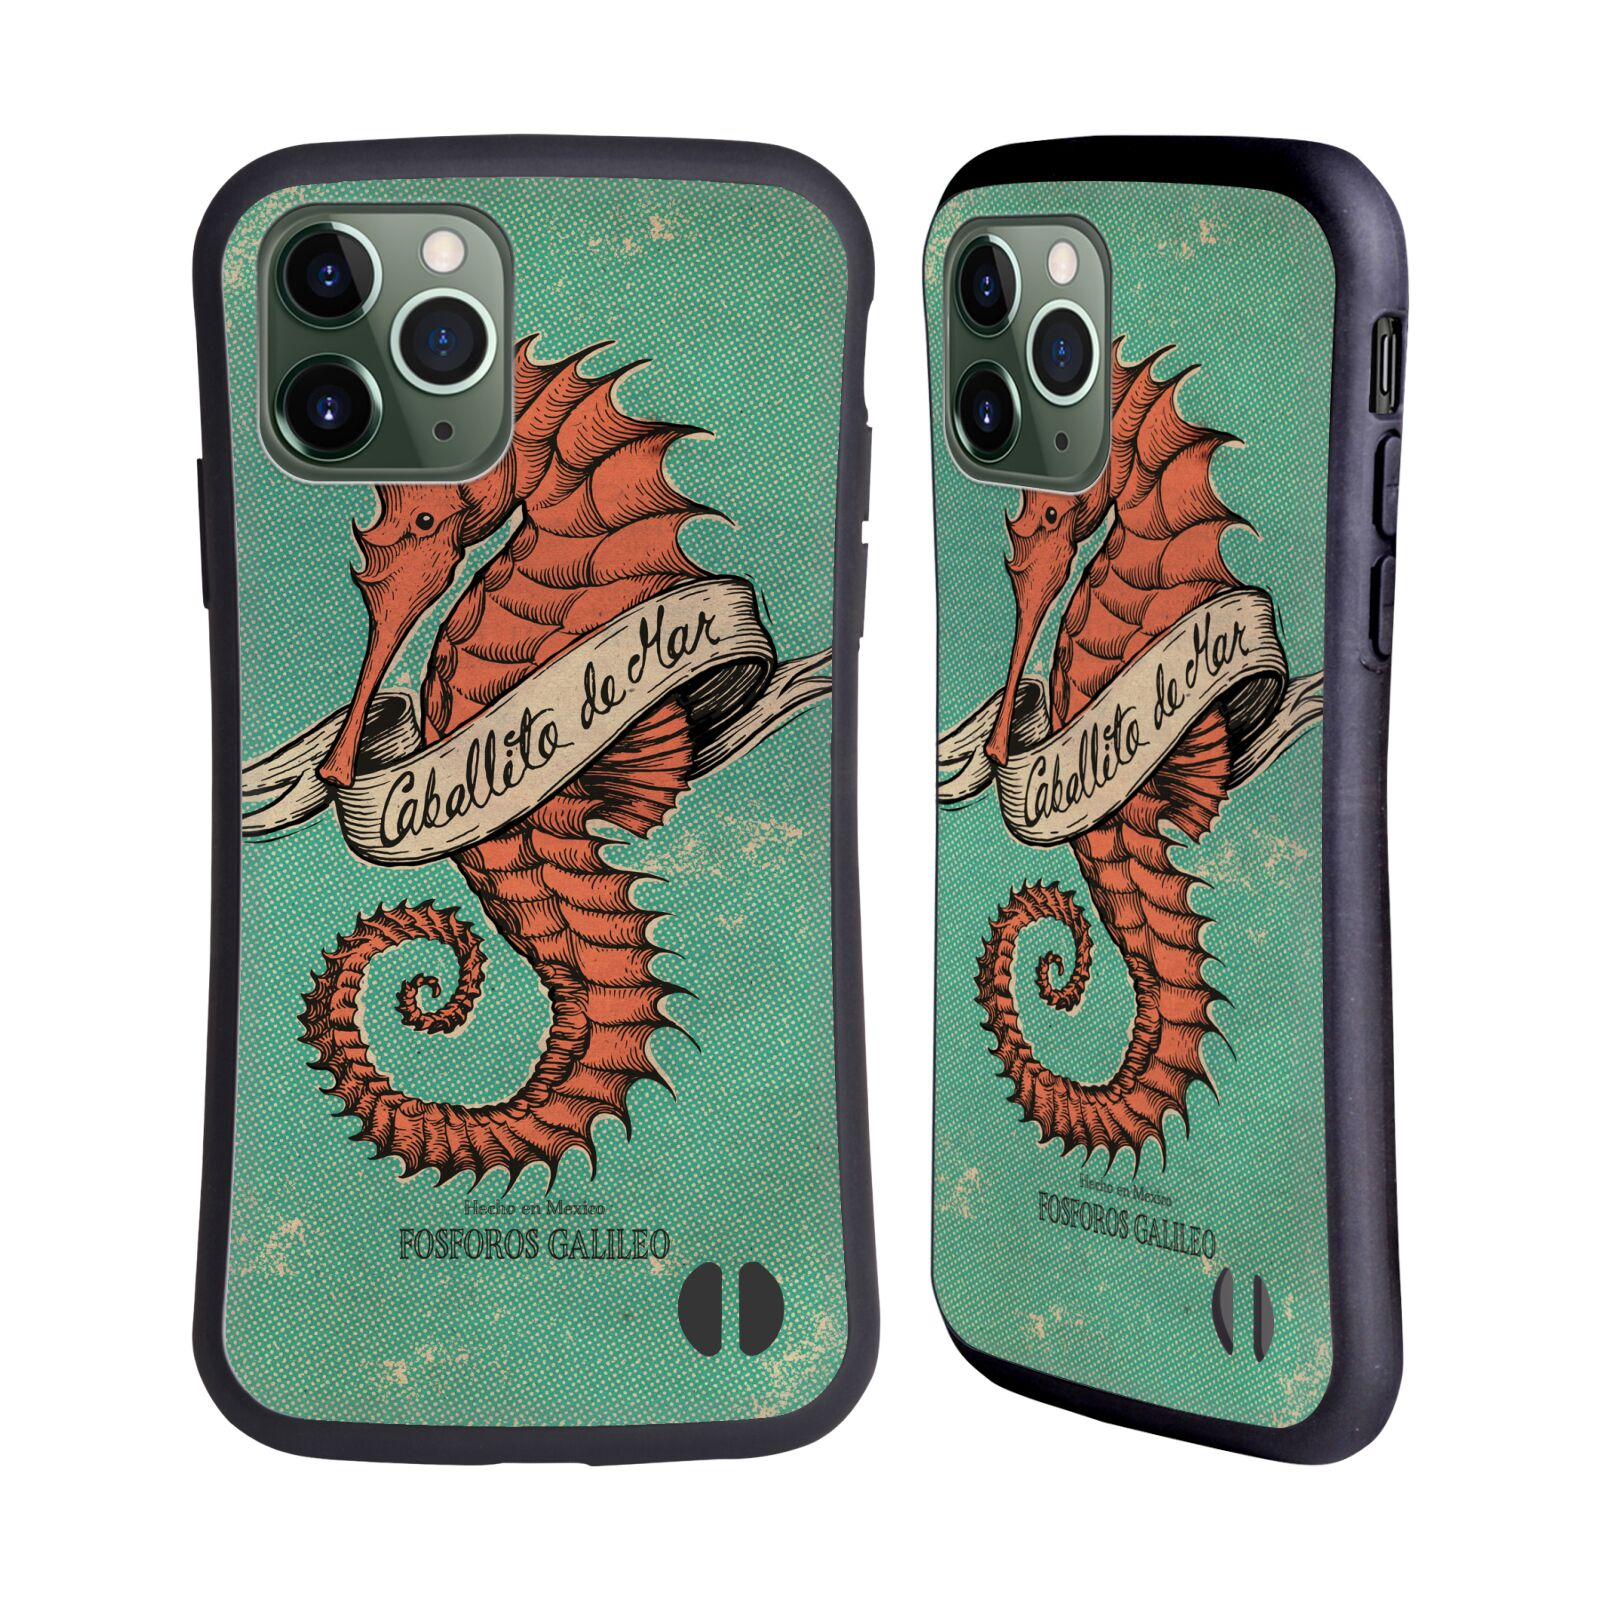 Official Fosforos Galileo Diseños Caballito De Mar Hybrid Case for Apple iPhone 11 Pro